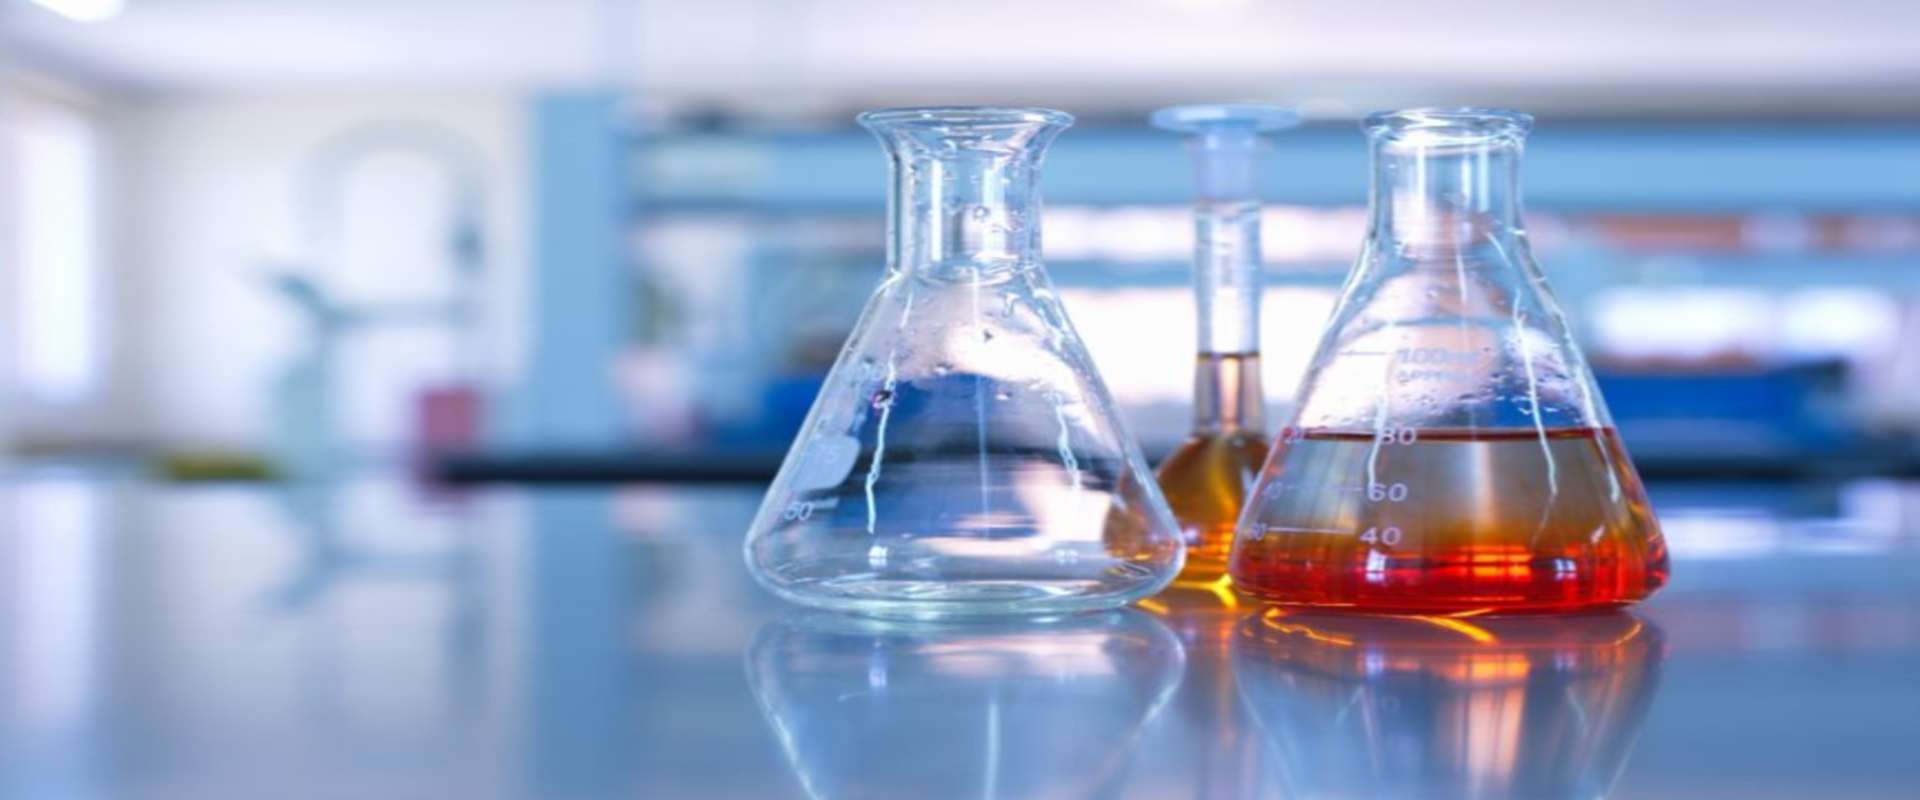 Industry 4.0 - Transforming the Chemical Industry